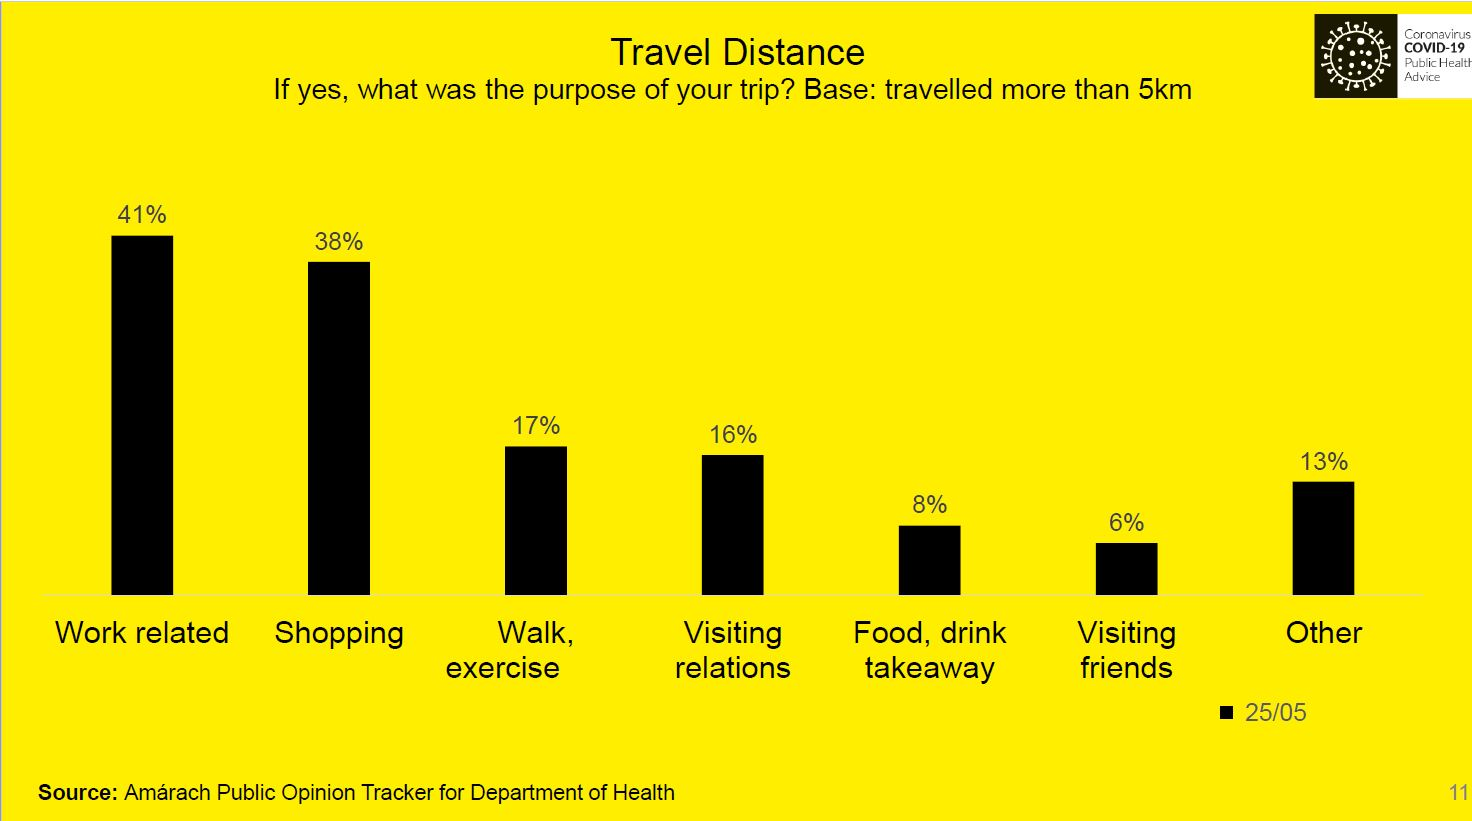 travel distance: what was purpose for travelling outside 5km